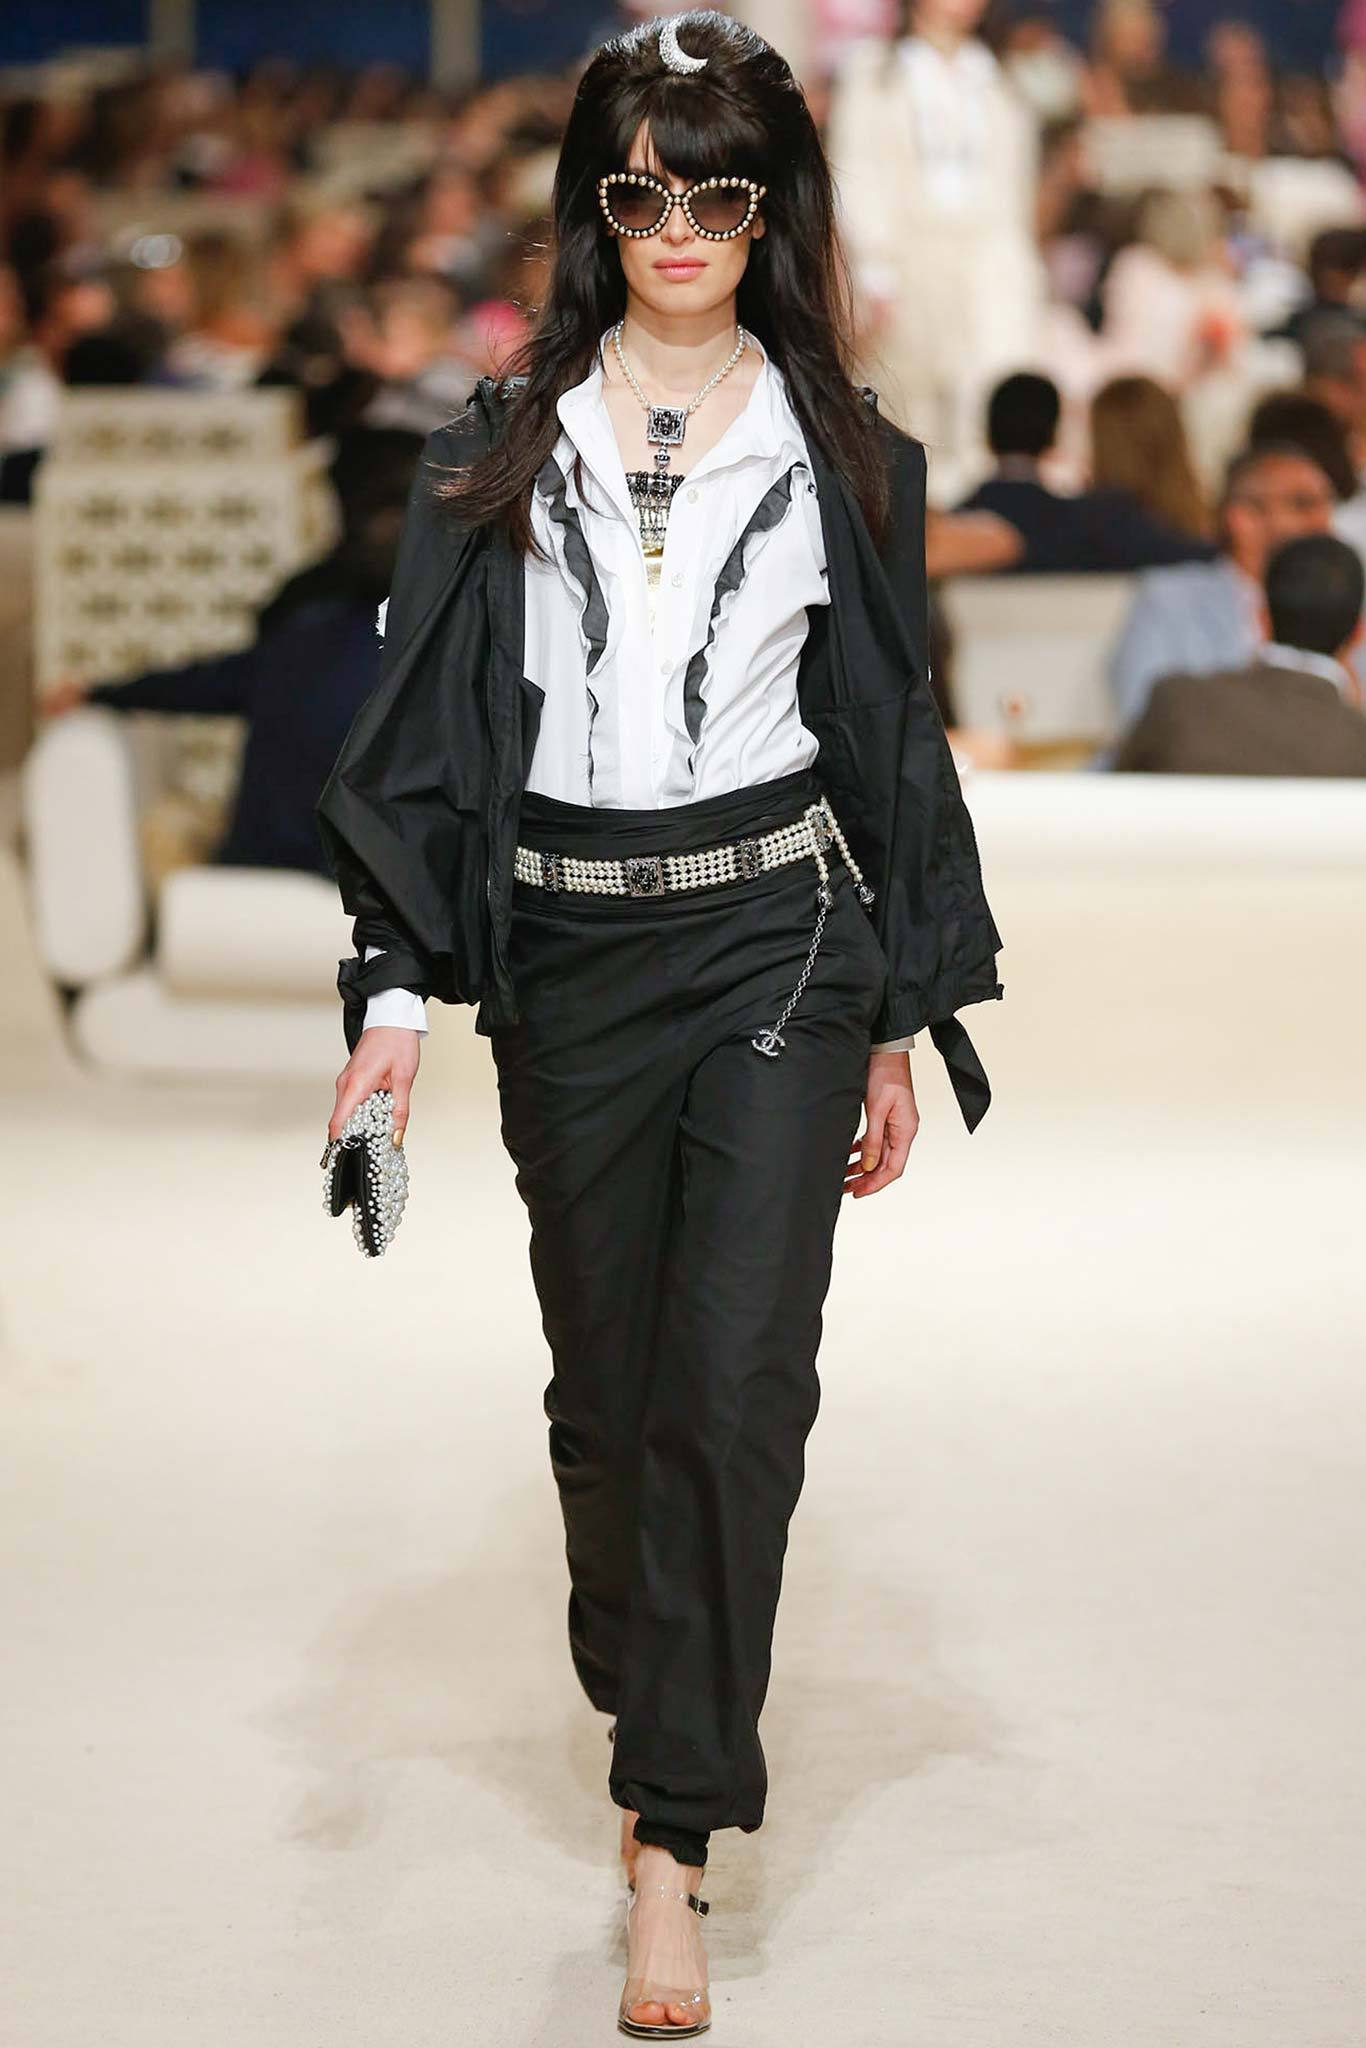 Sabrina Ioffreda | Chanel Cruise 2015 (Photography: Gianni Pucci / Indigitalimages.com via Style.com)